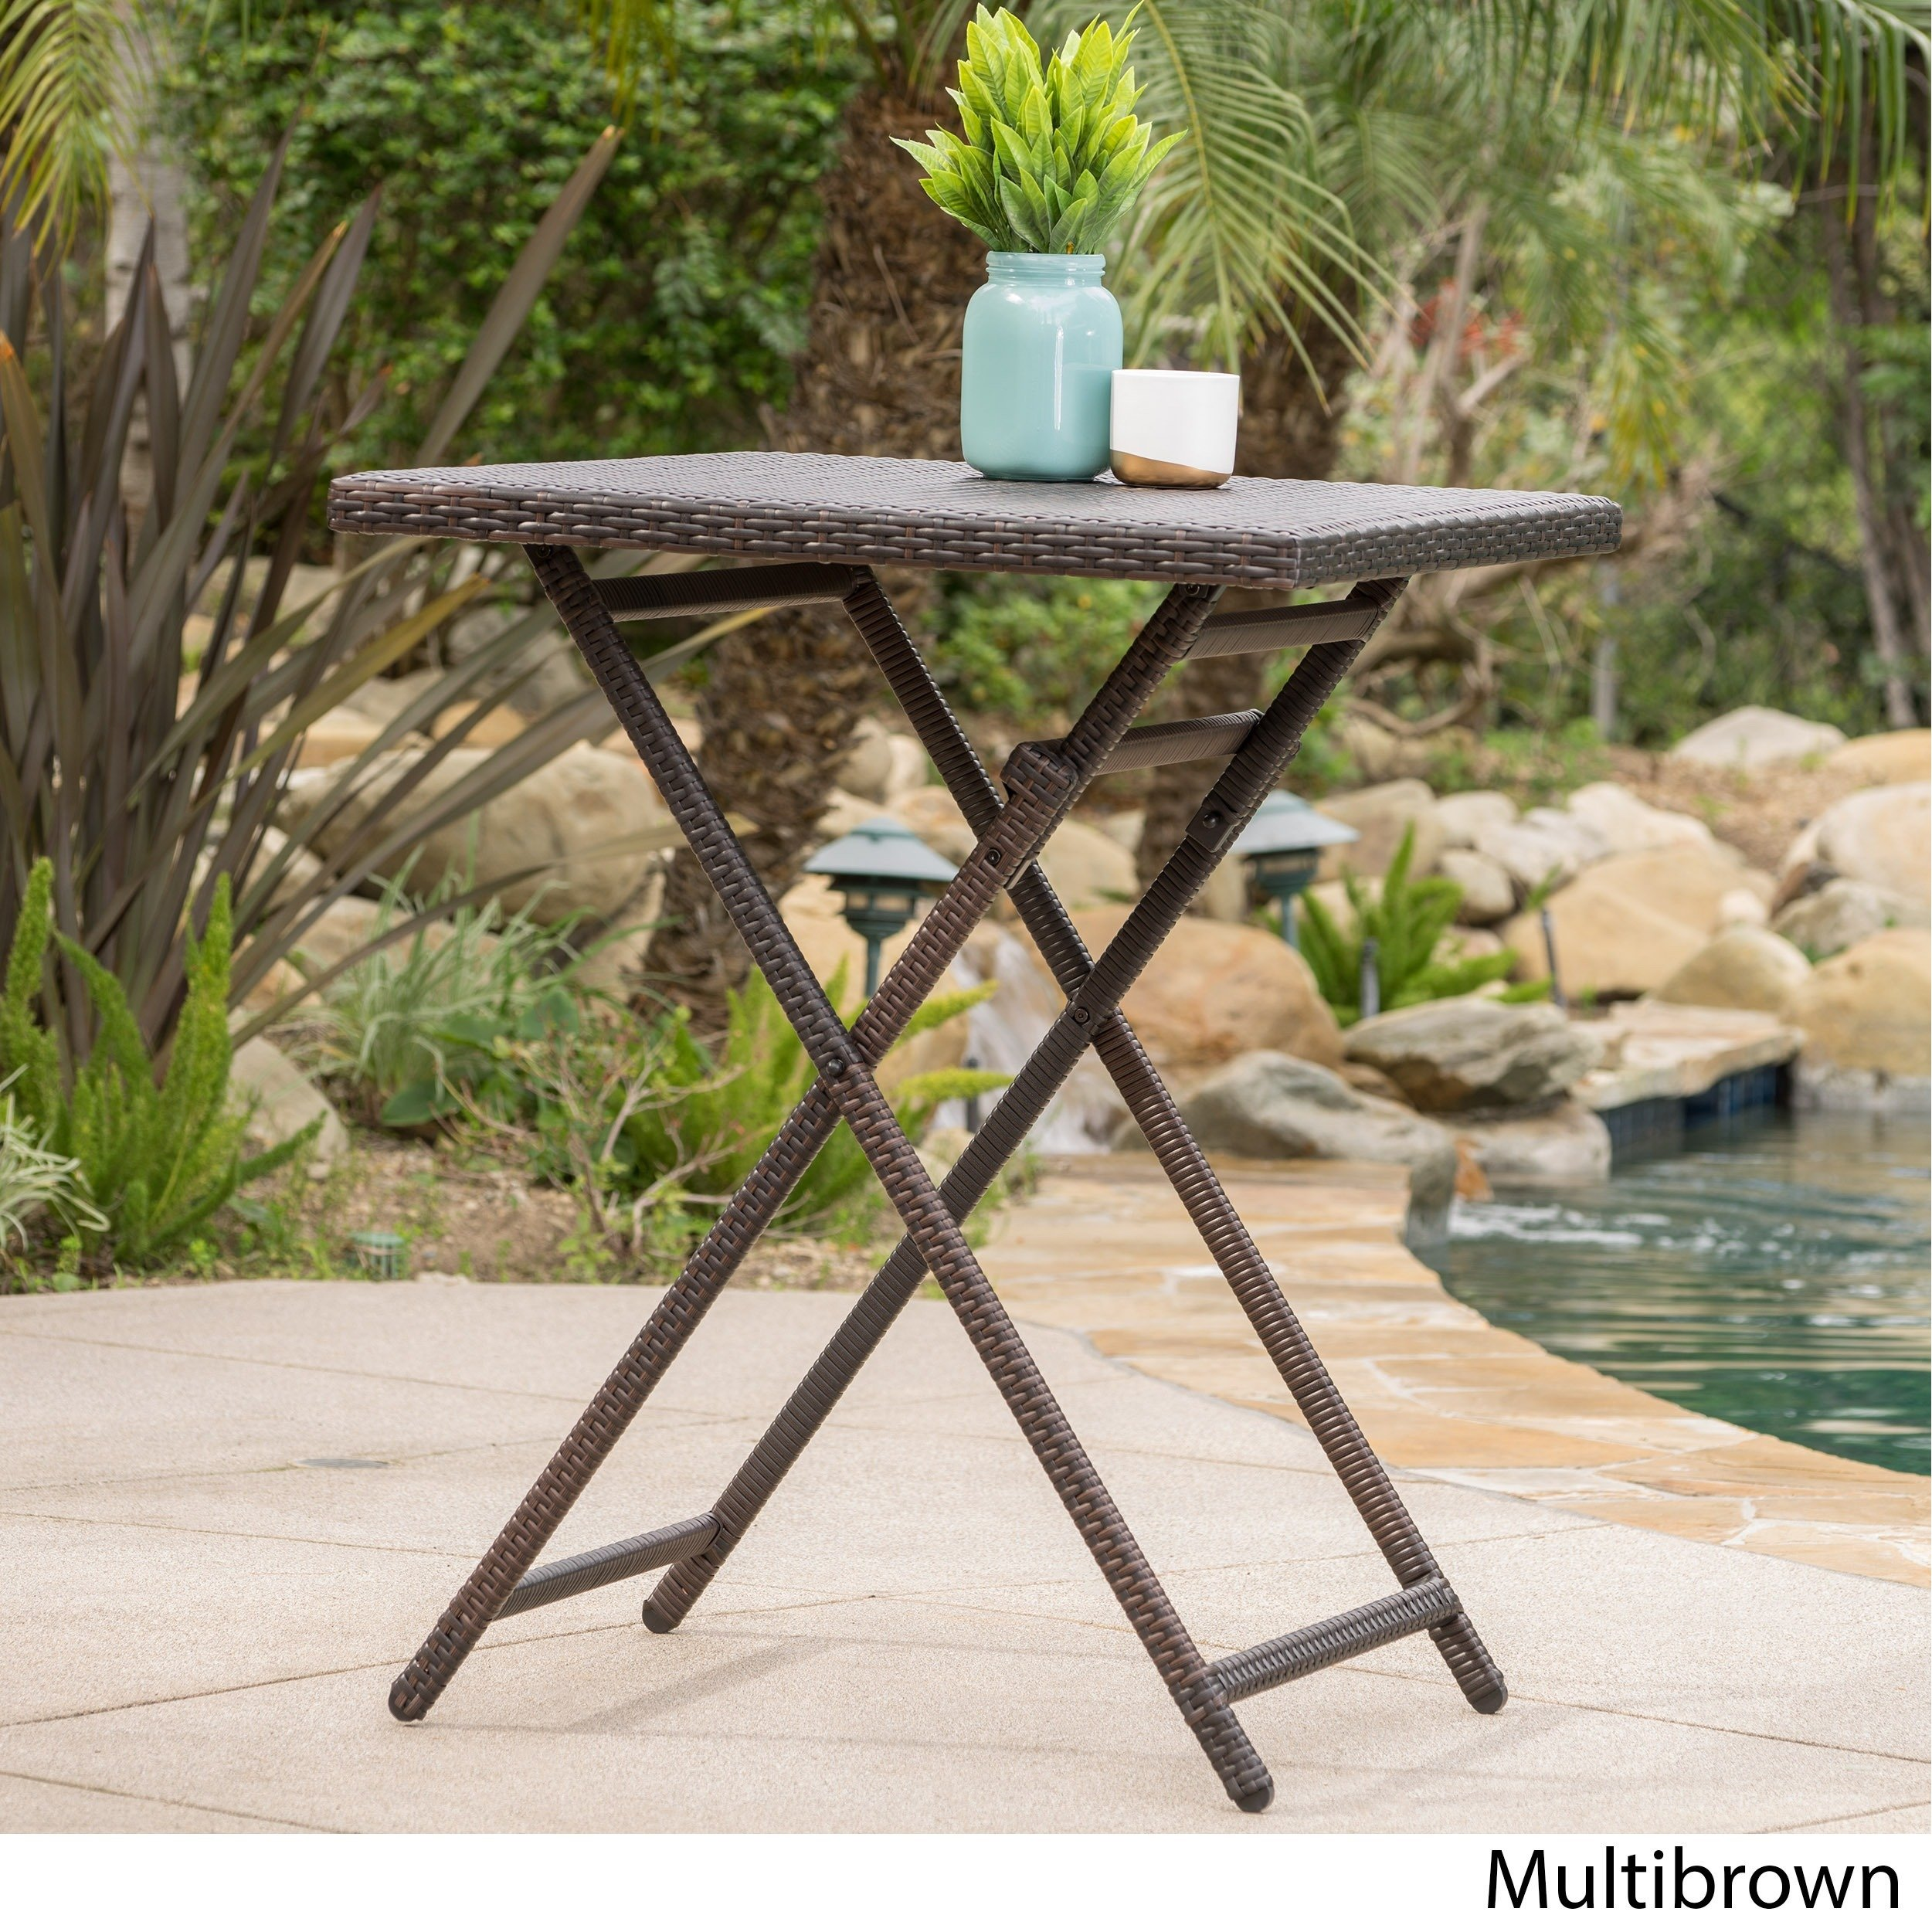 margarita outdoor wicker bar table christopher knight home foldable accent brown free shipping today cast metal nate berkus circular sofa oak glass coffee spring mattress low side